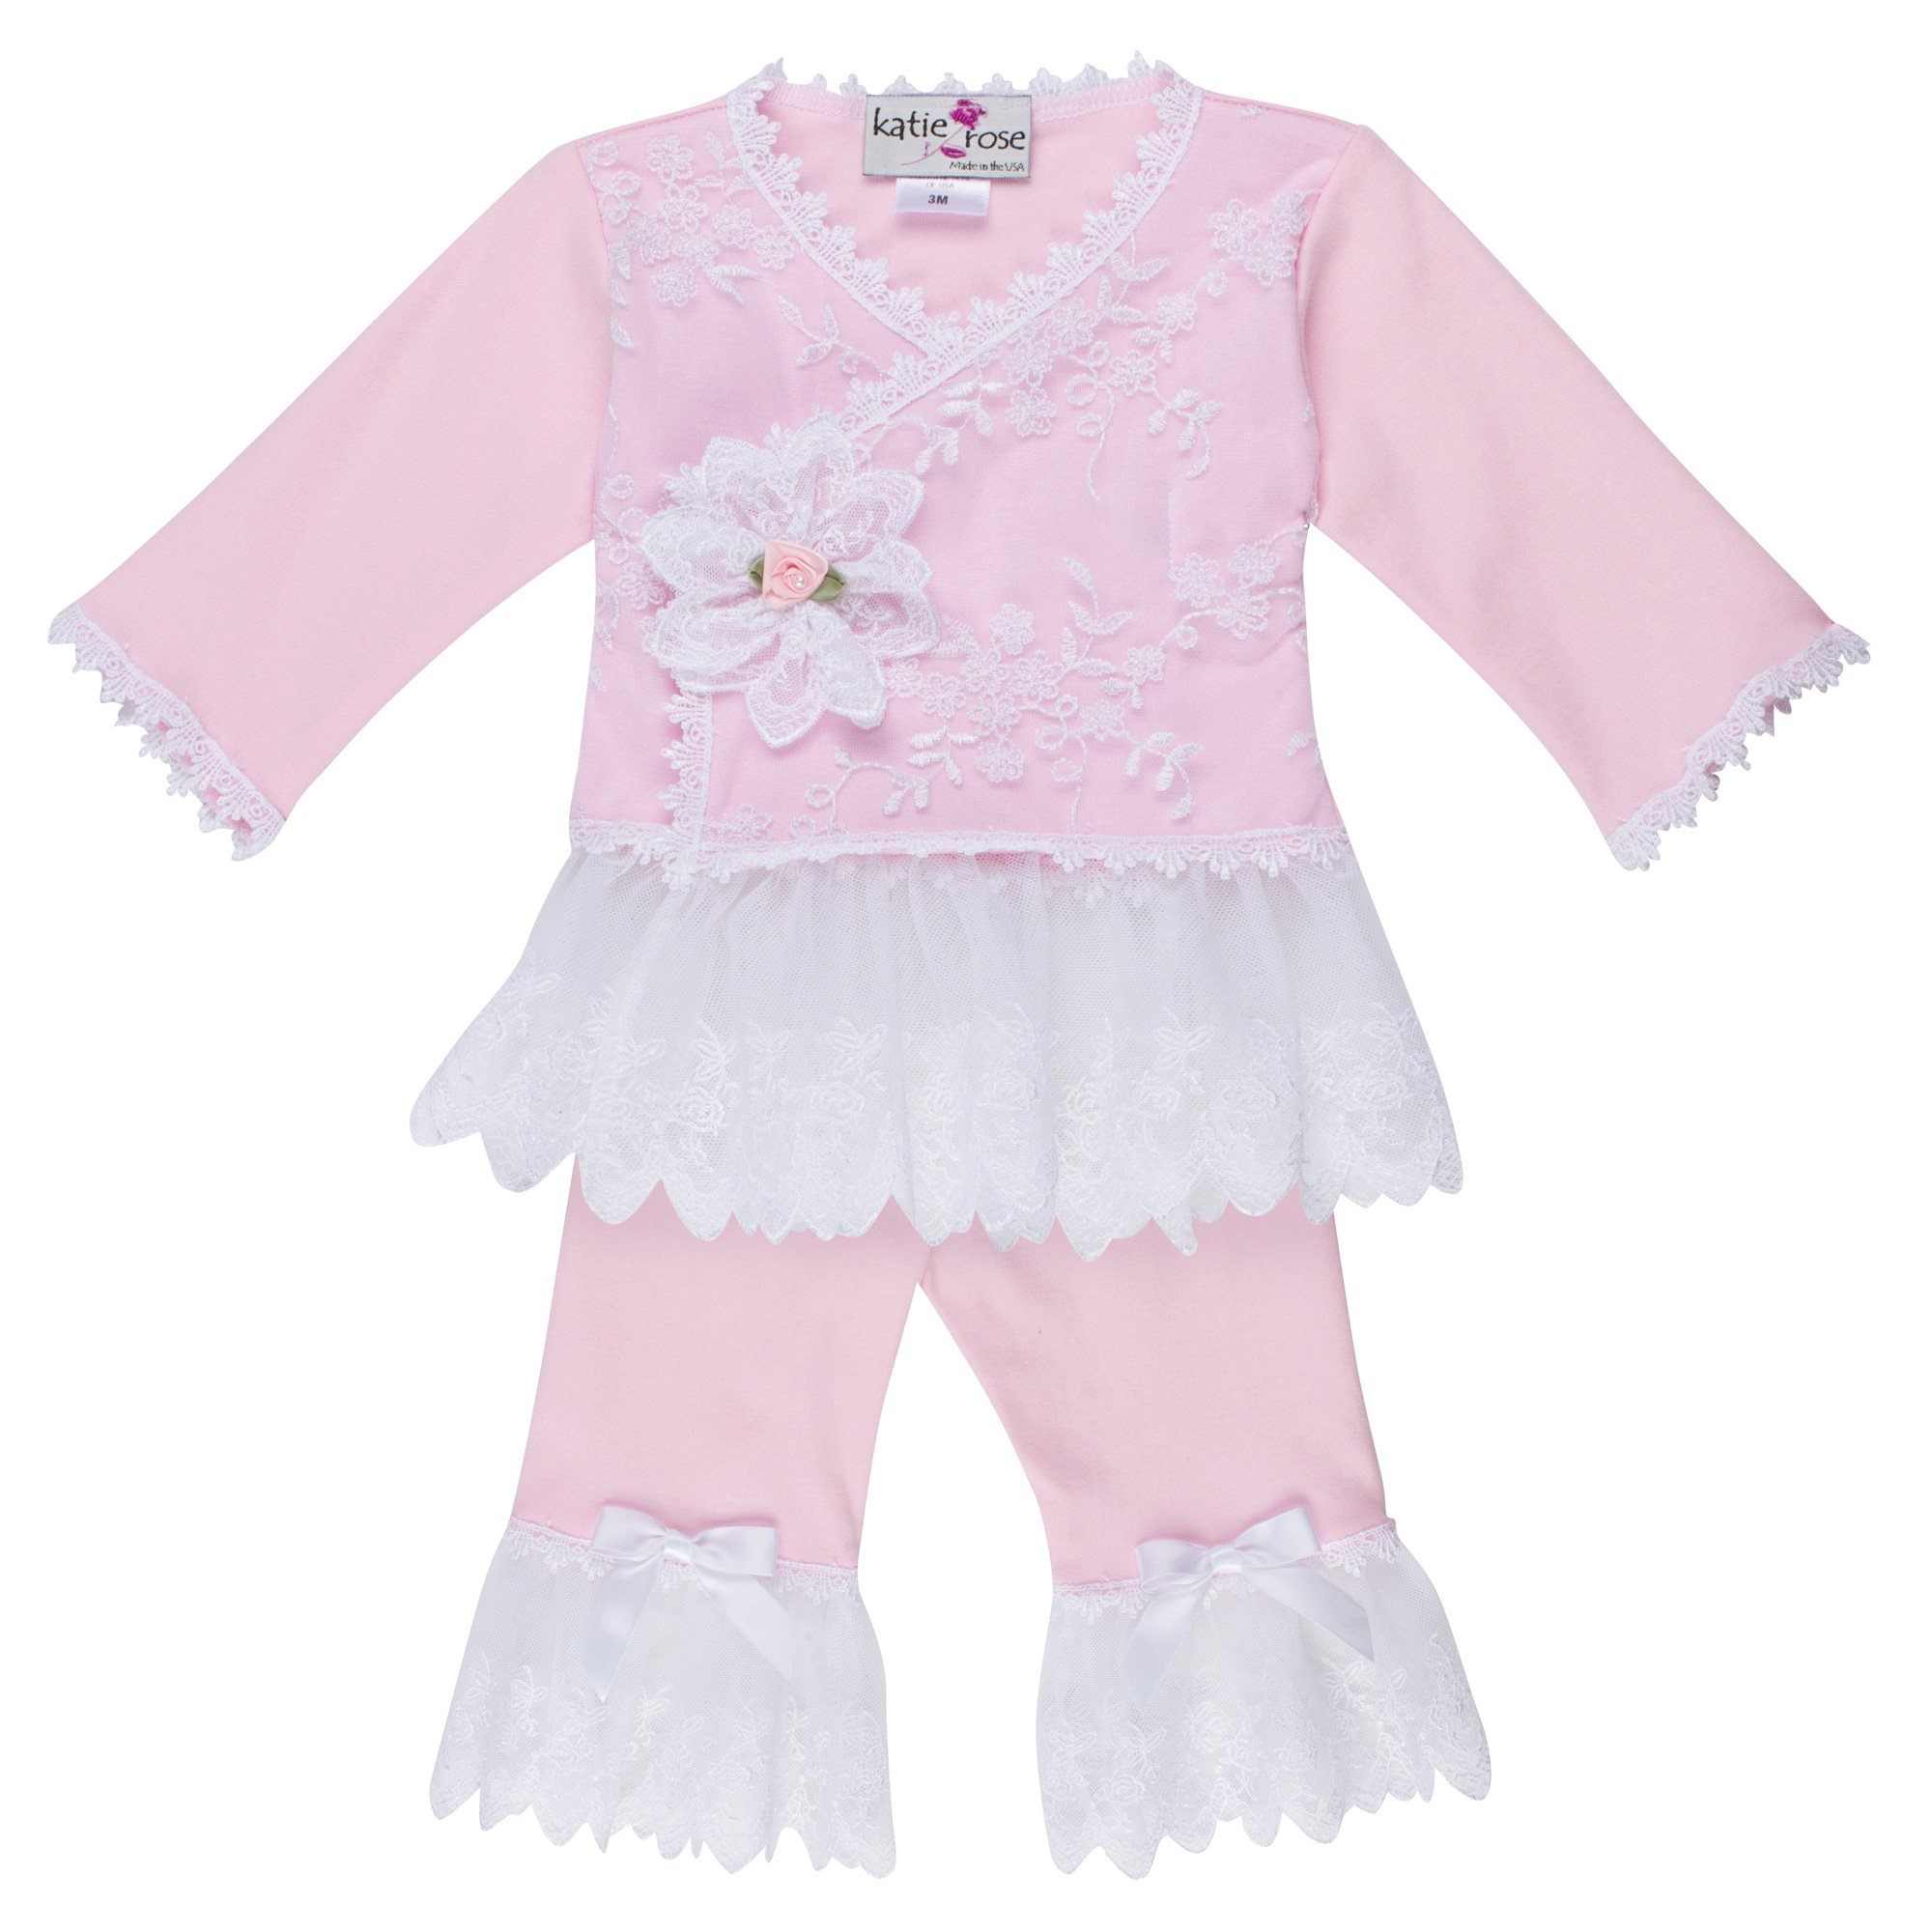 Katie Rose Christening & Baby Clothes Baby Bling Street